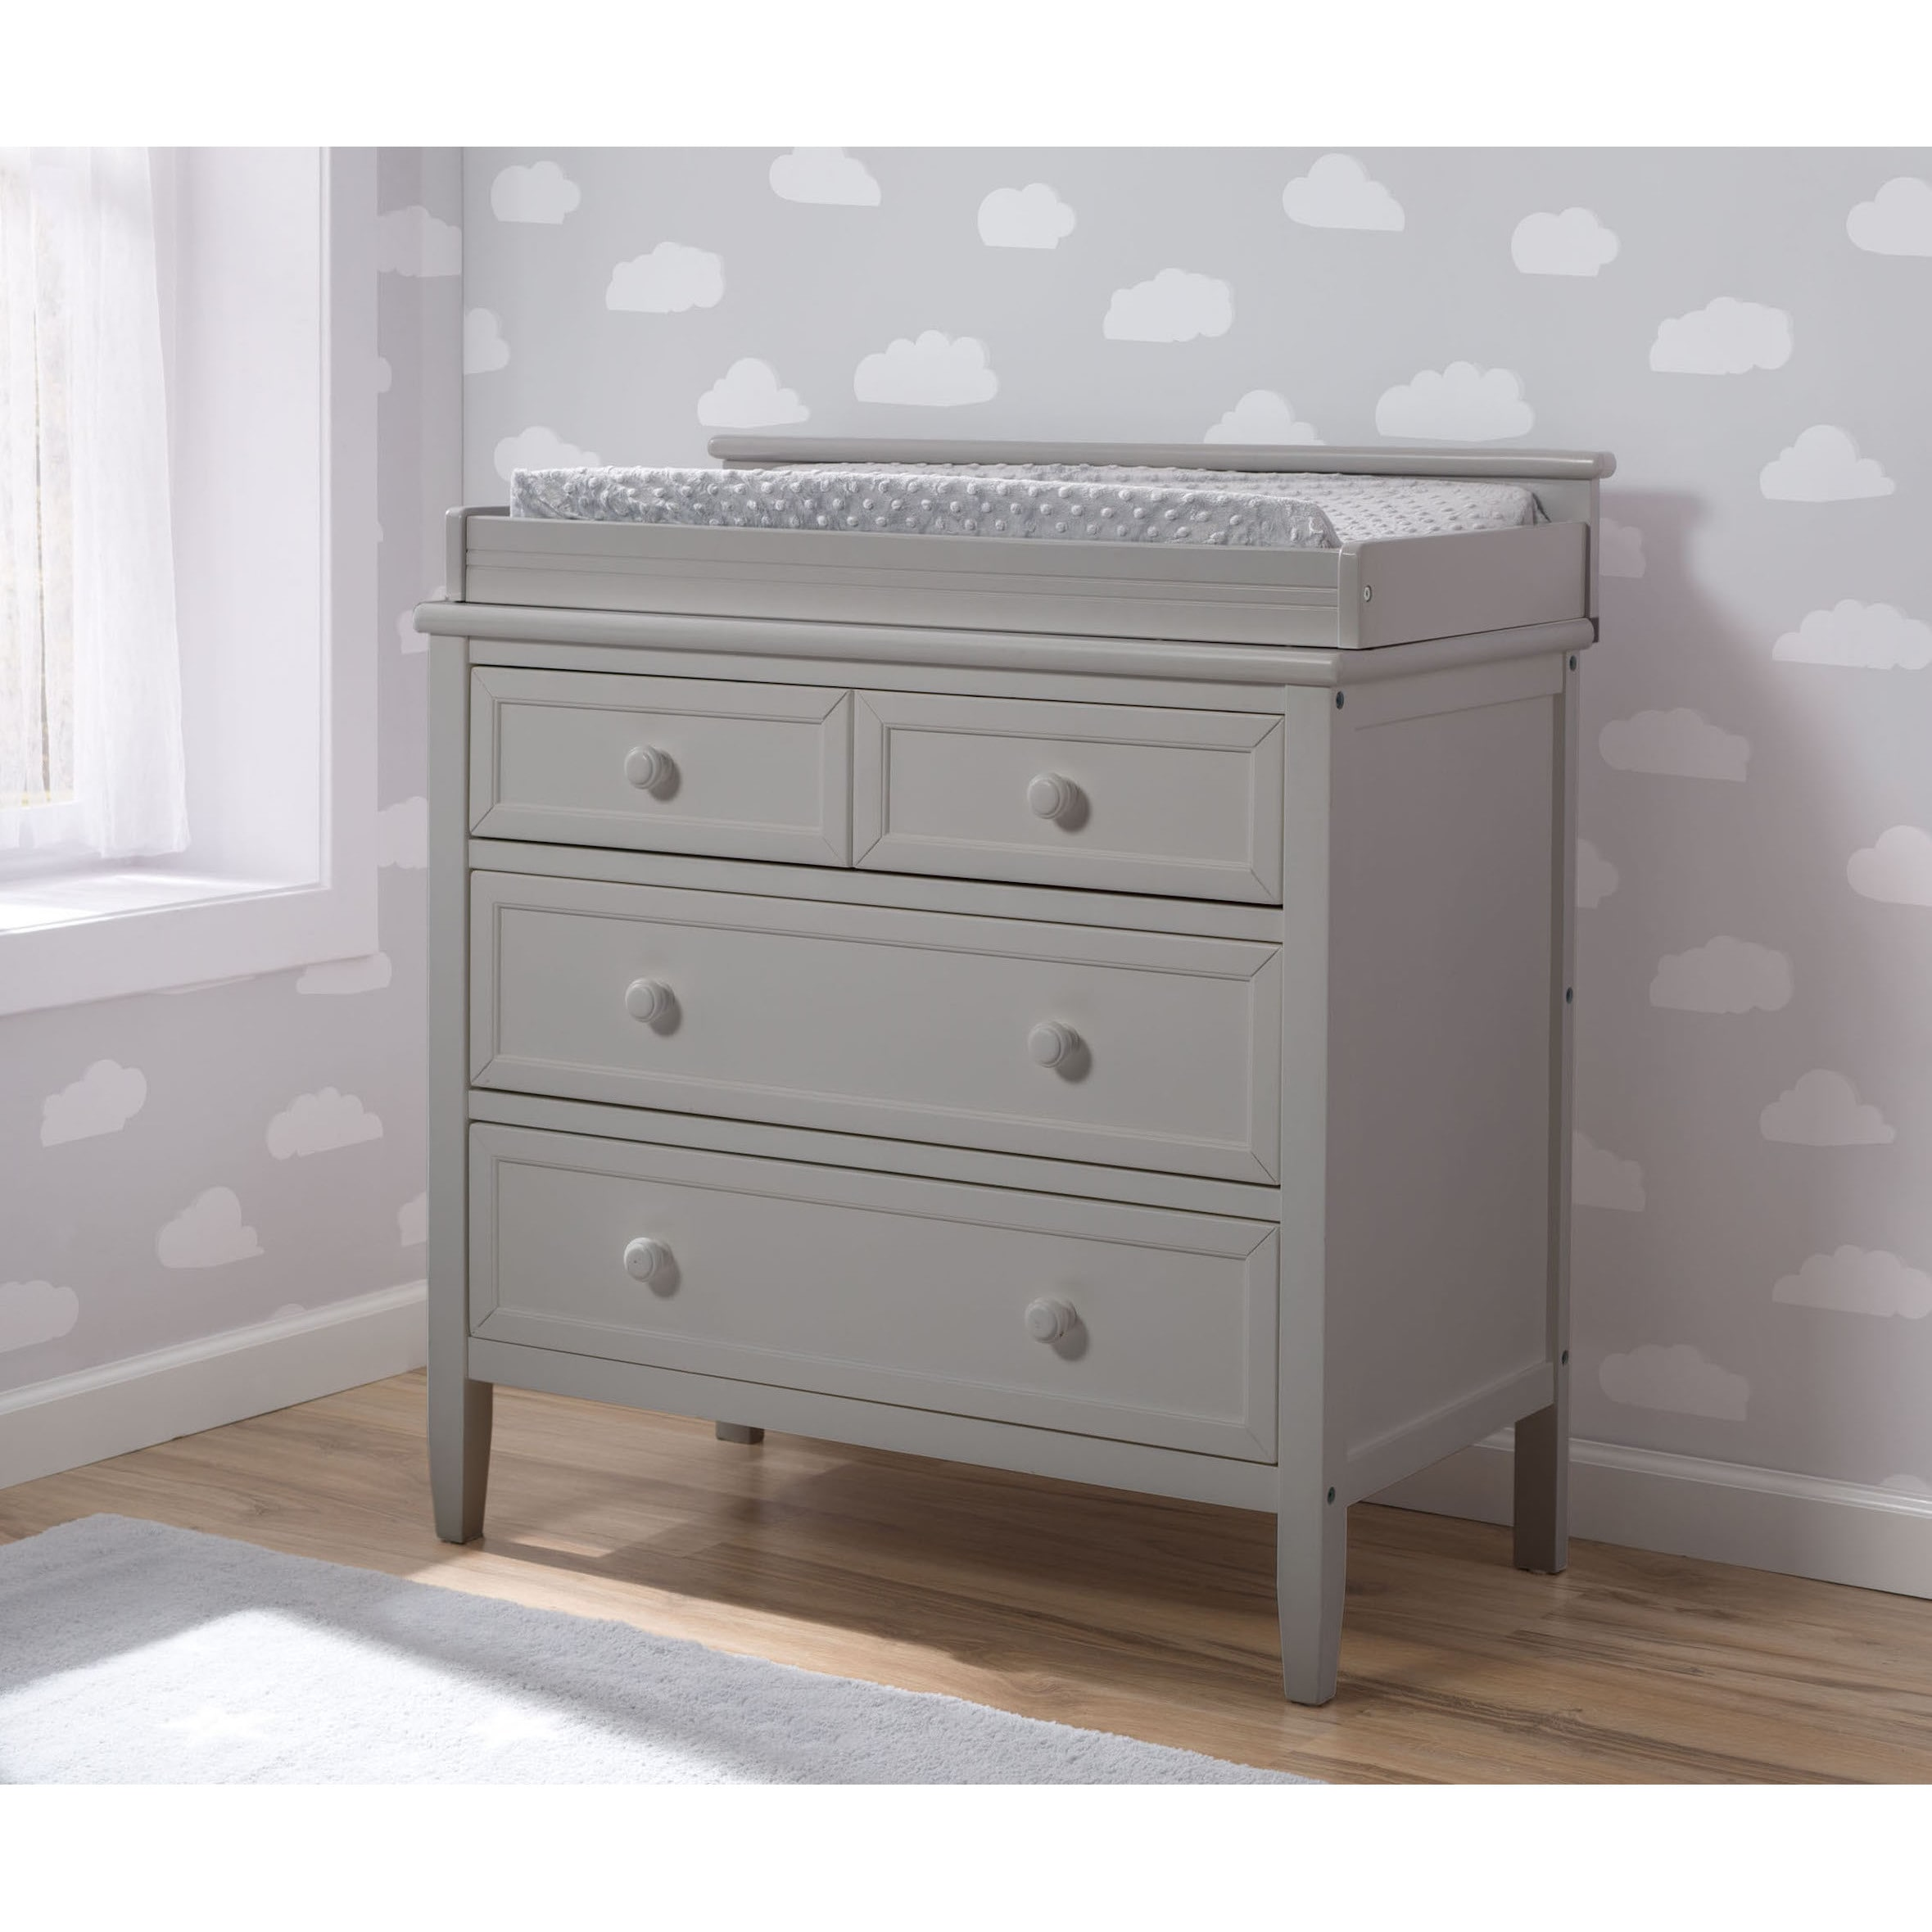 Epic Signature 3 Drawer Dresser Grey